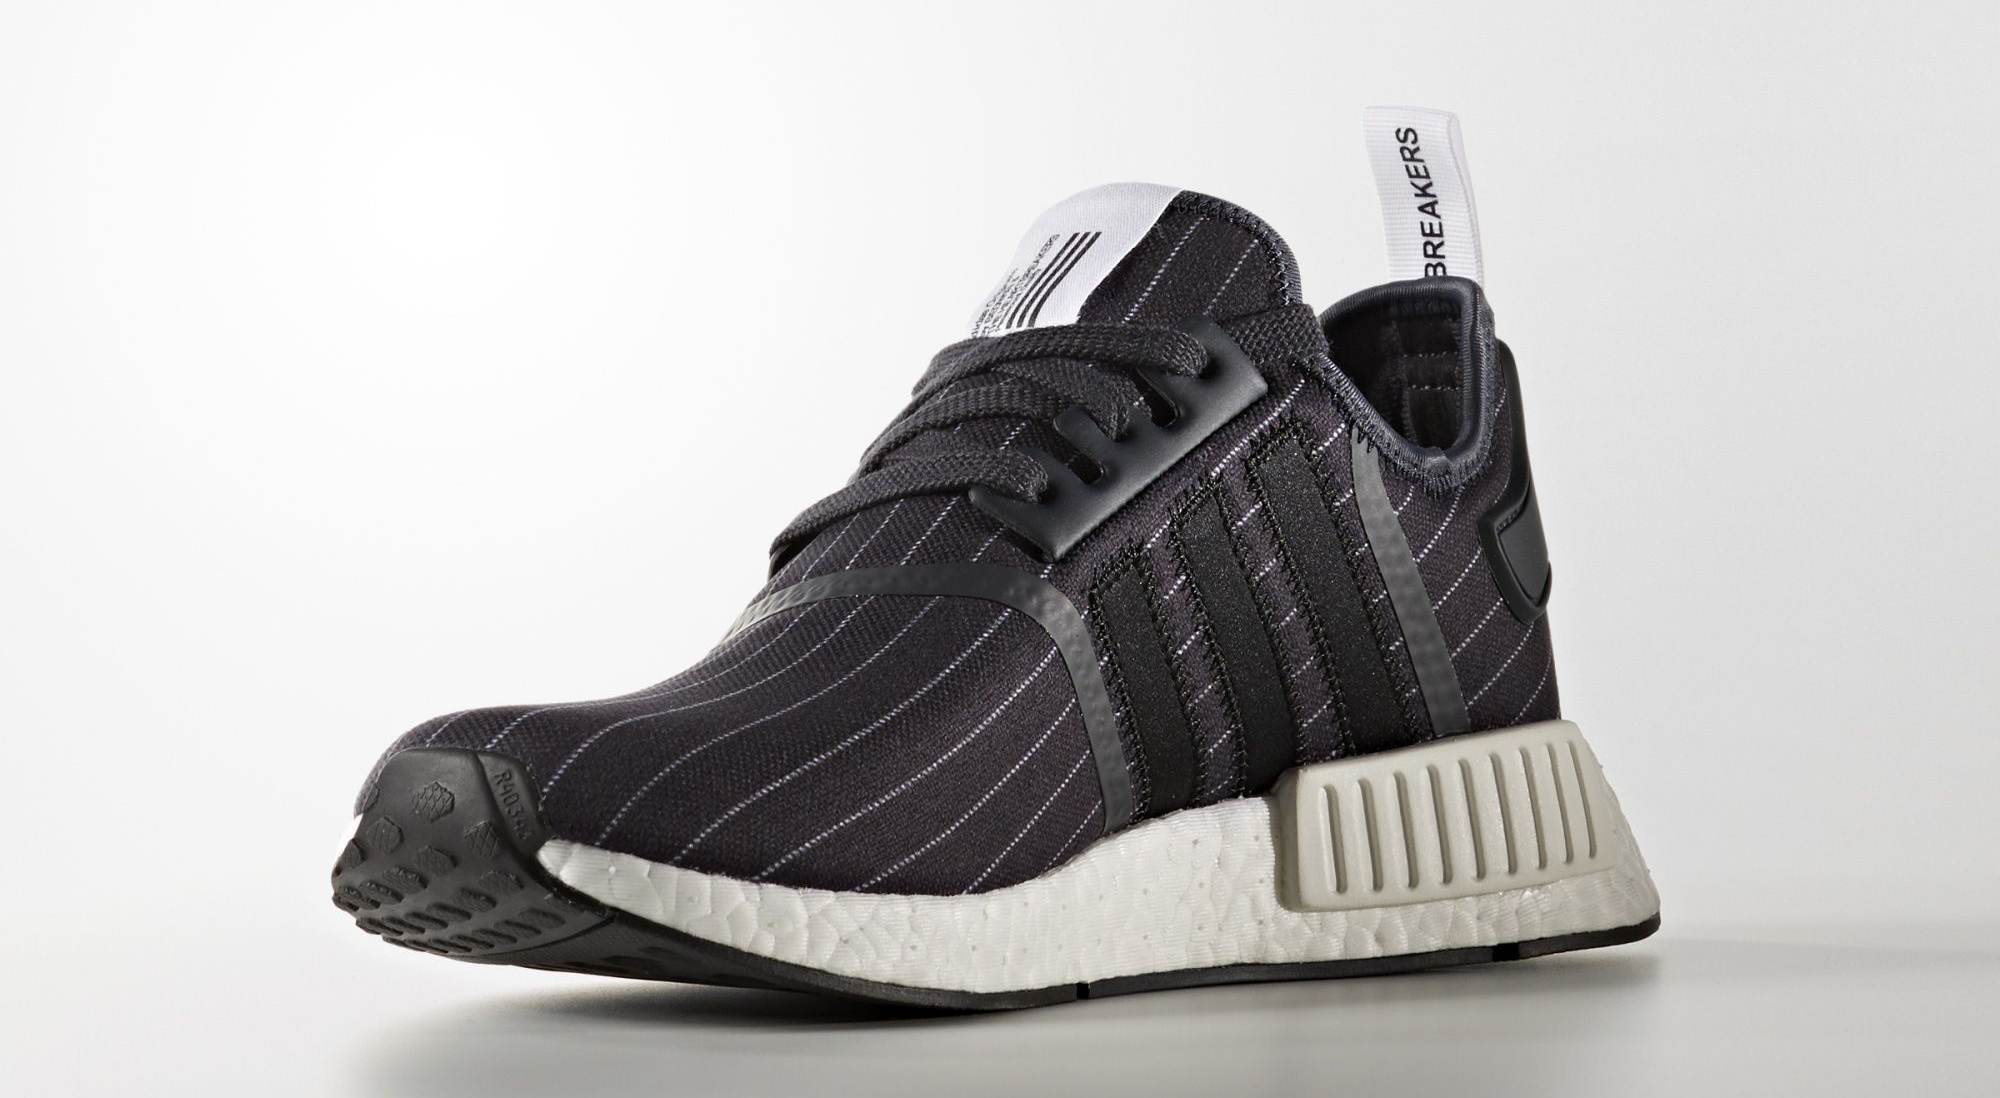 official photos f18c4 f5a52 Bedwin Heartbreakers Adidas NMD BB3124 | Sole Collector